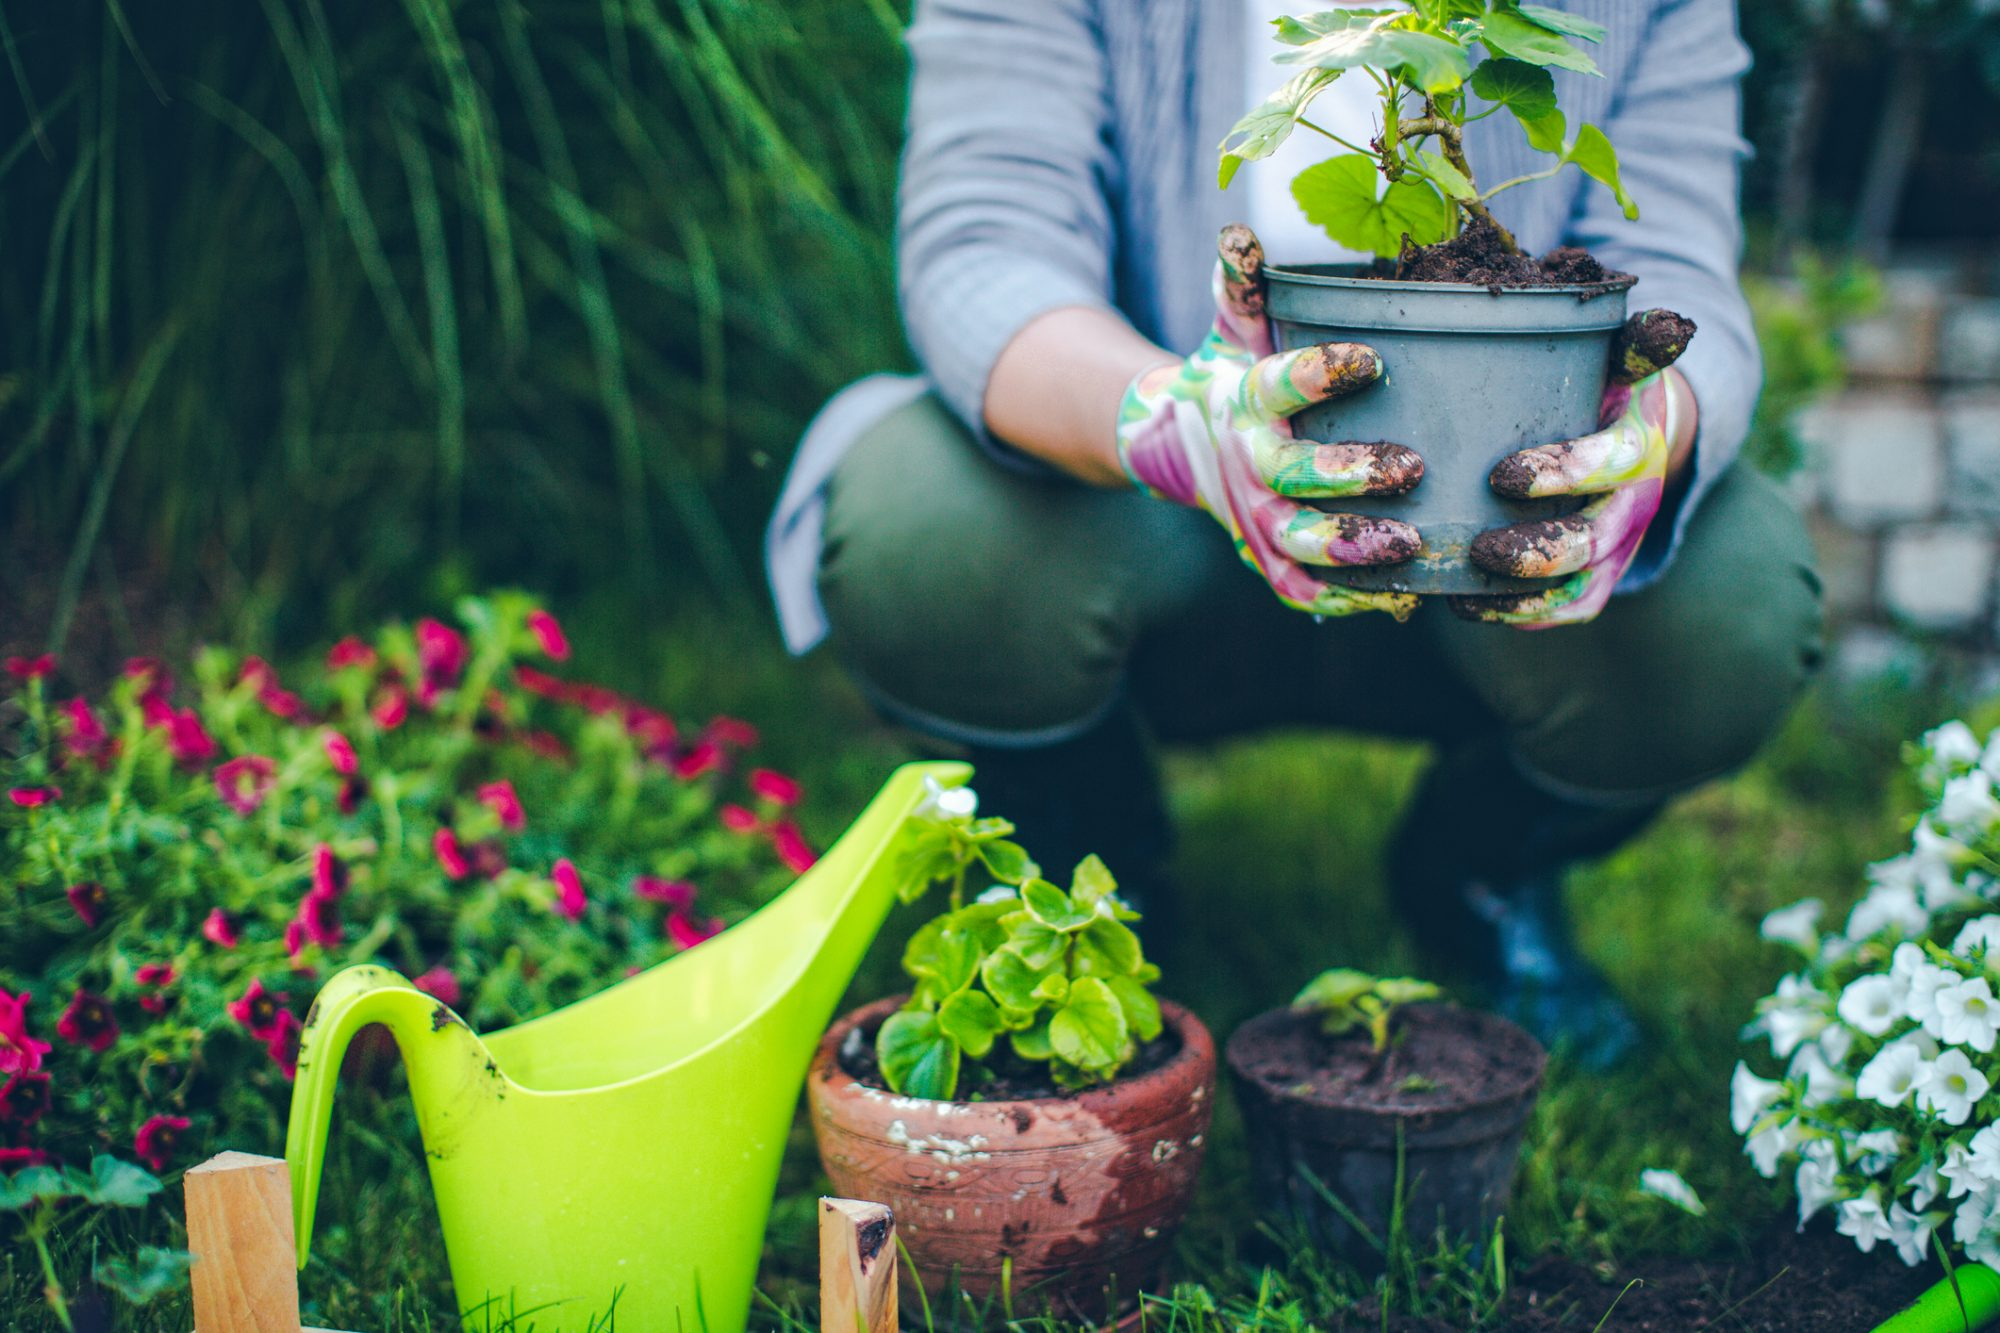 6 Gardening Trends to Look Out for in 2018